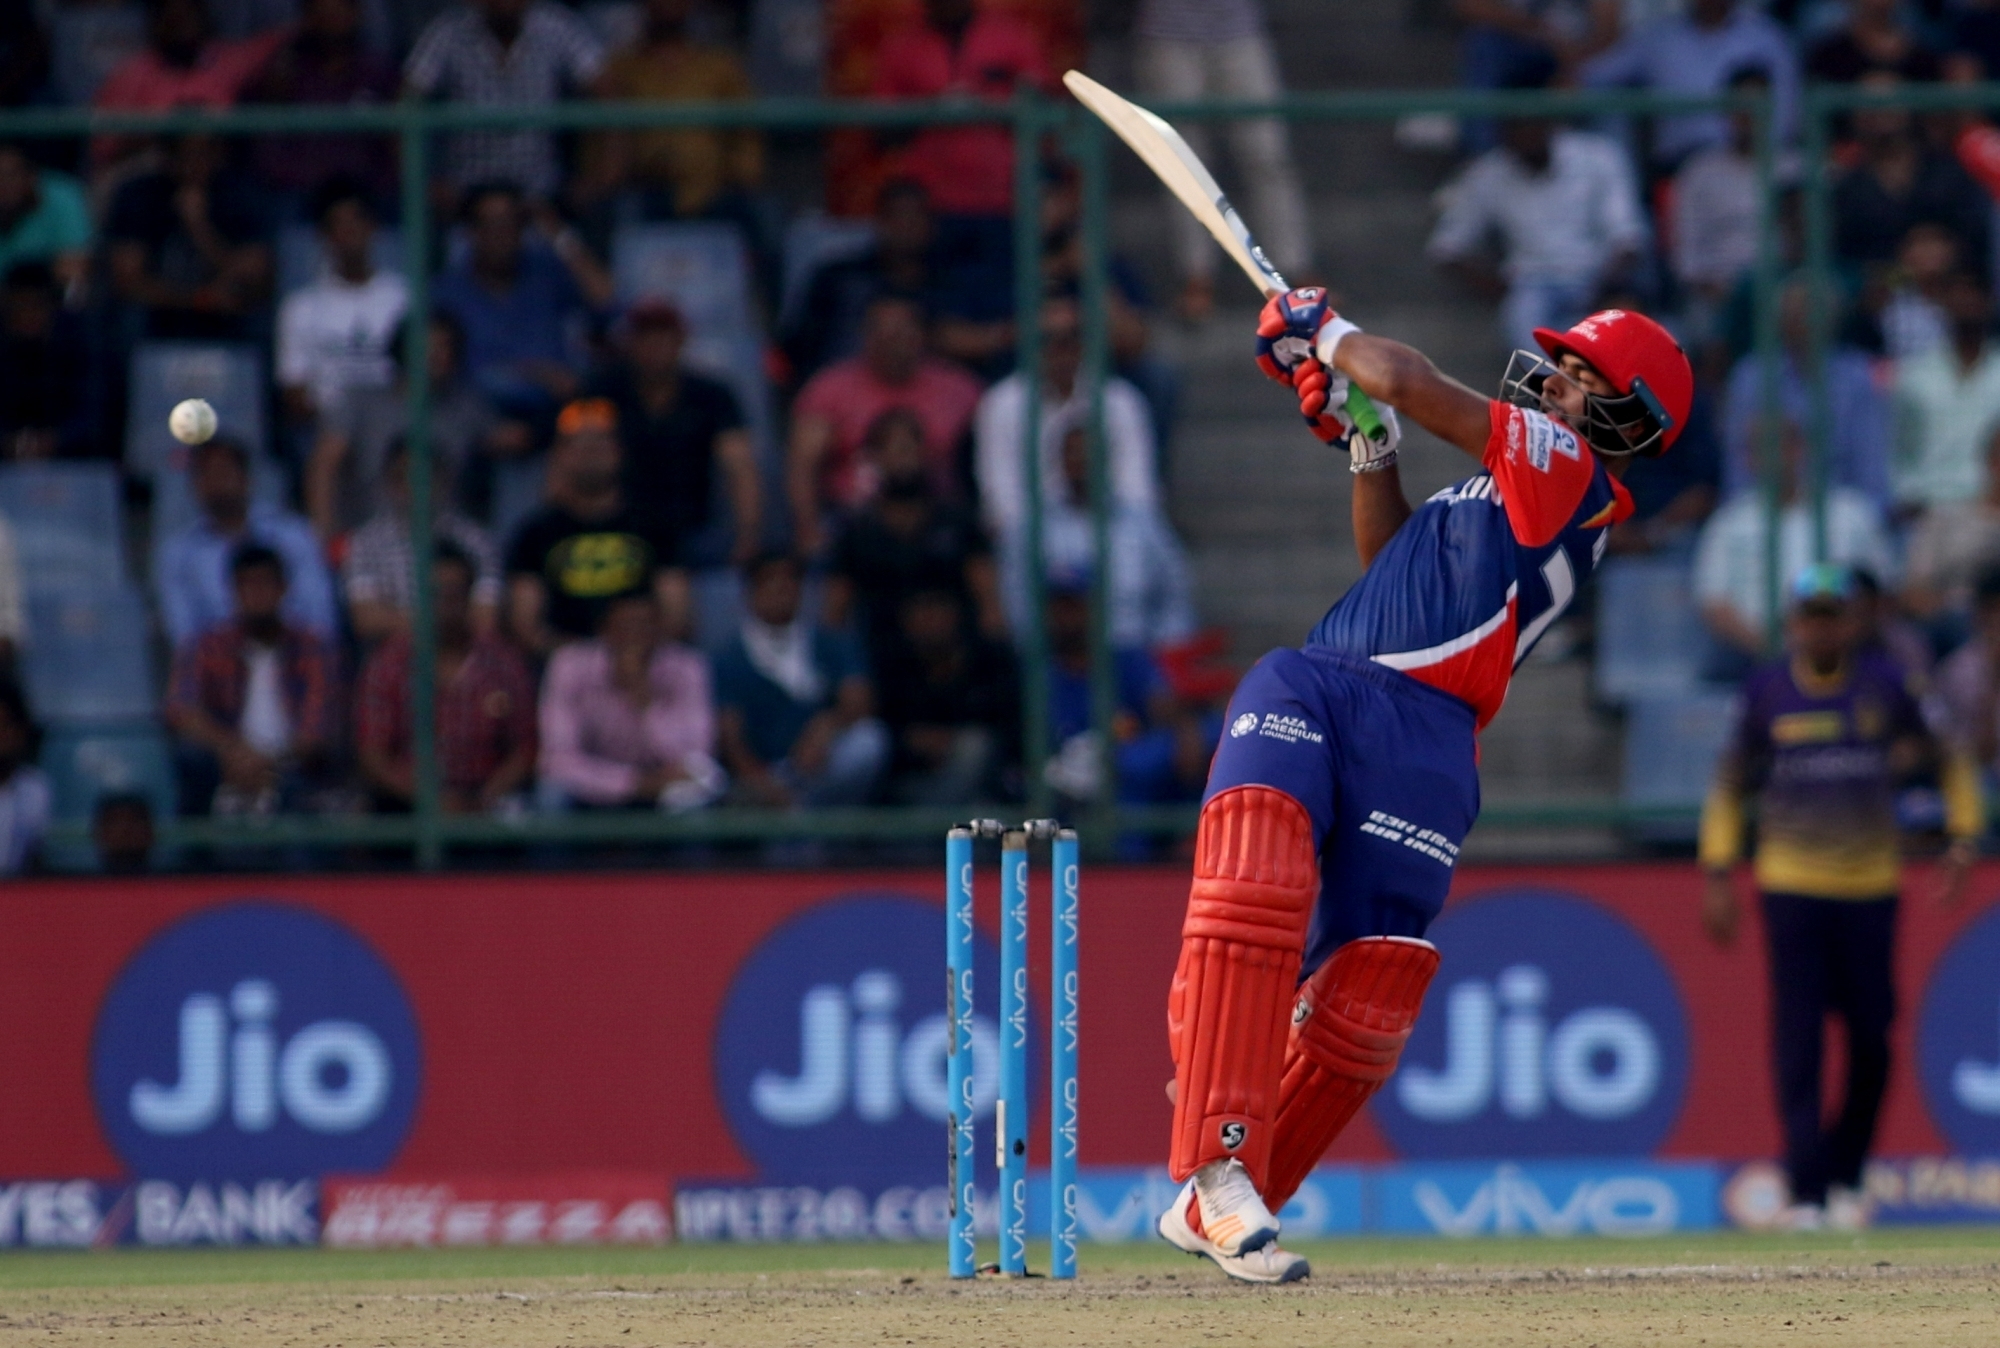 Rishabh Pant played for Delhi Daredevils three days after his father's death (IANS)